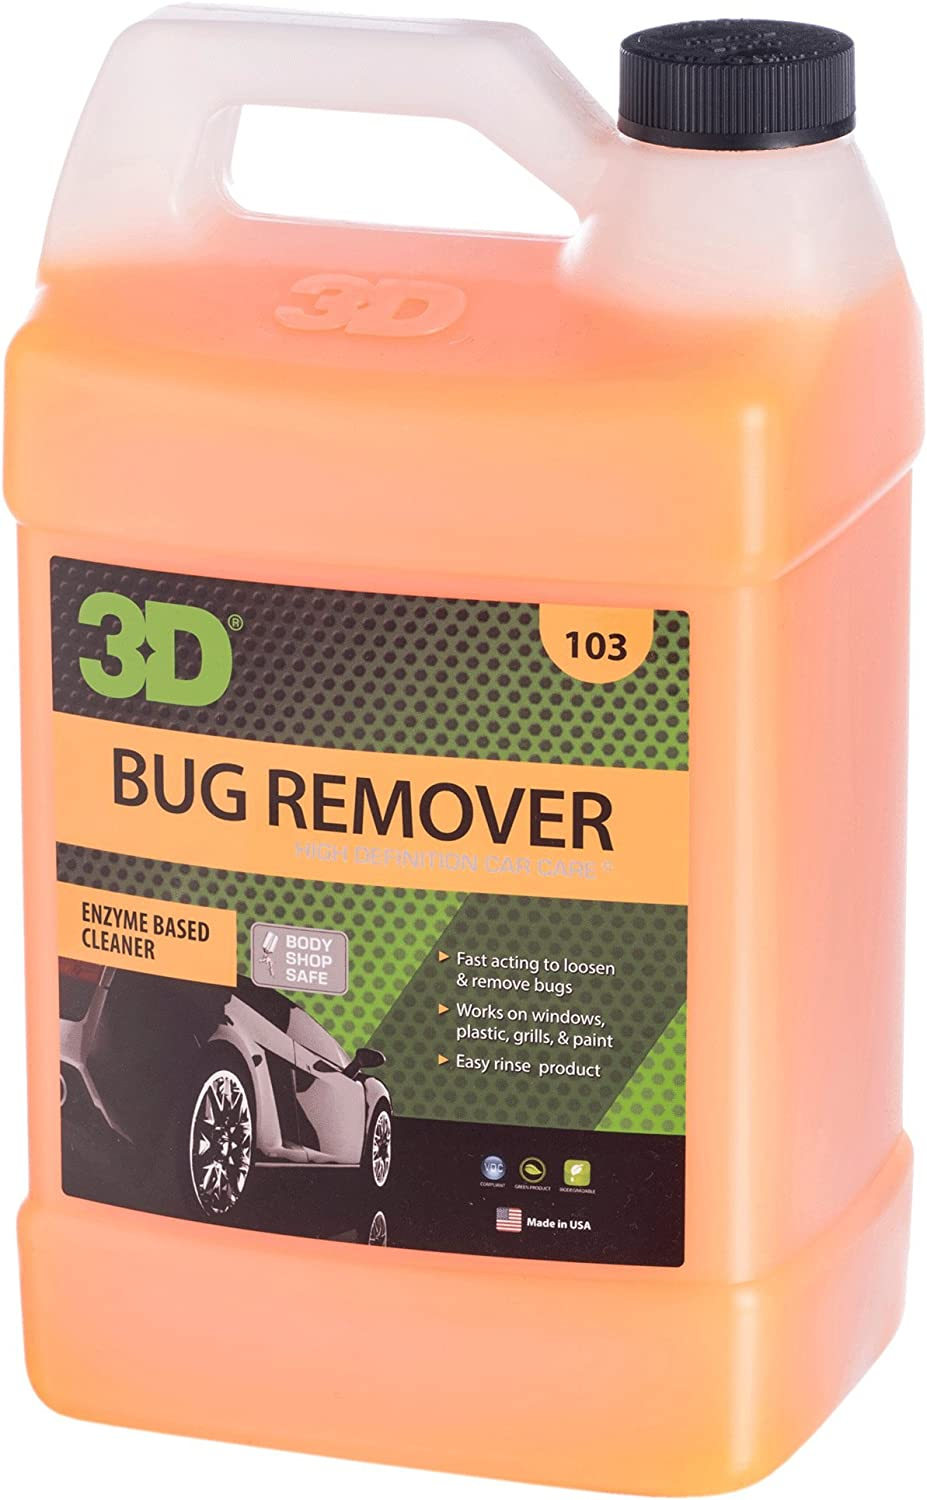 3D Auto Detailing Products Bug Remover | Enzyme Based Cleaner | Concentrated Degreaser | Removes Insects & Bugs | Works on Plastic, Rubber, Metal, Chrome, Aluminum, Windows & Mirrors (Gallon)